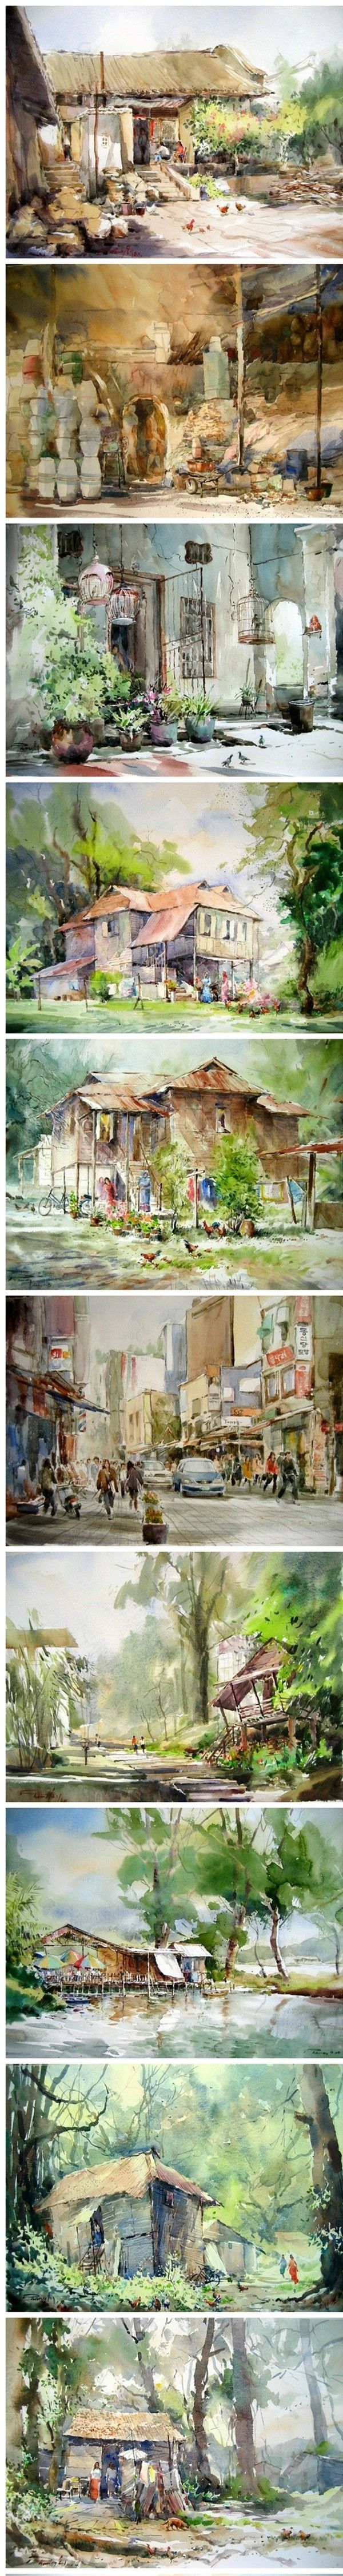 Phang Chew水彩 #watercolor jd